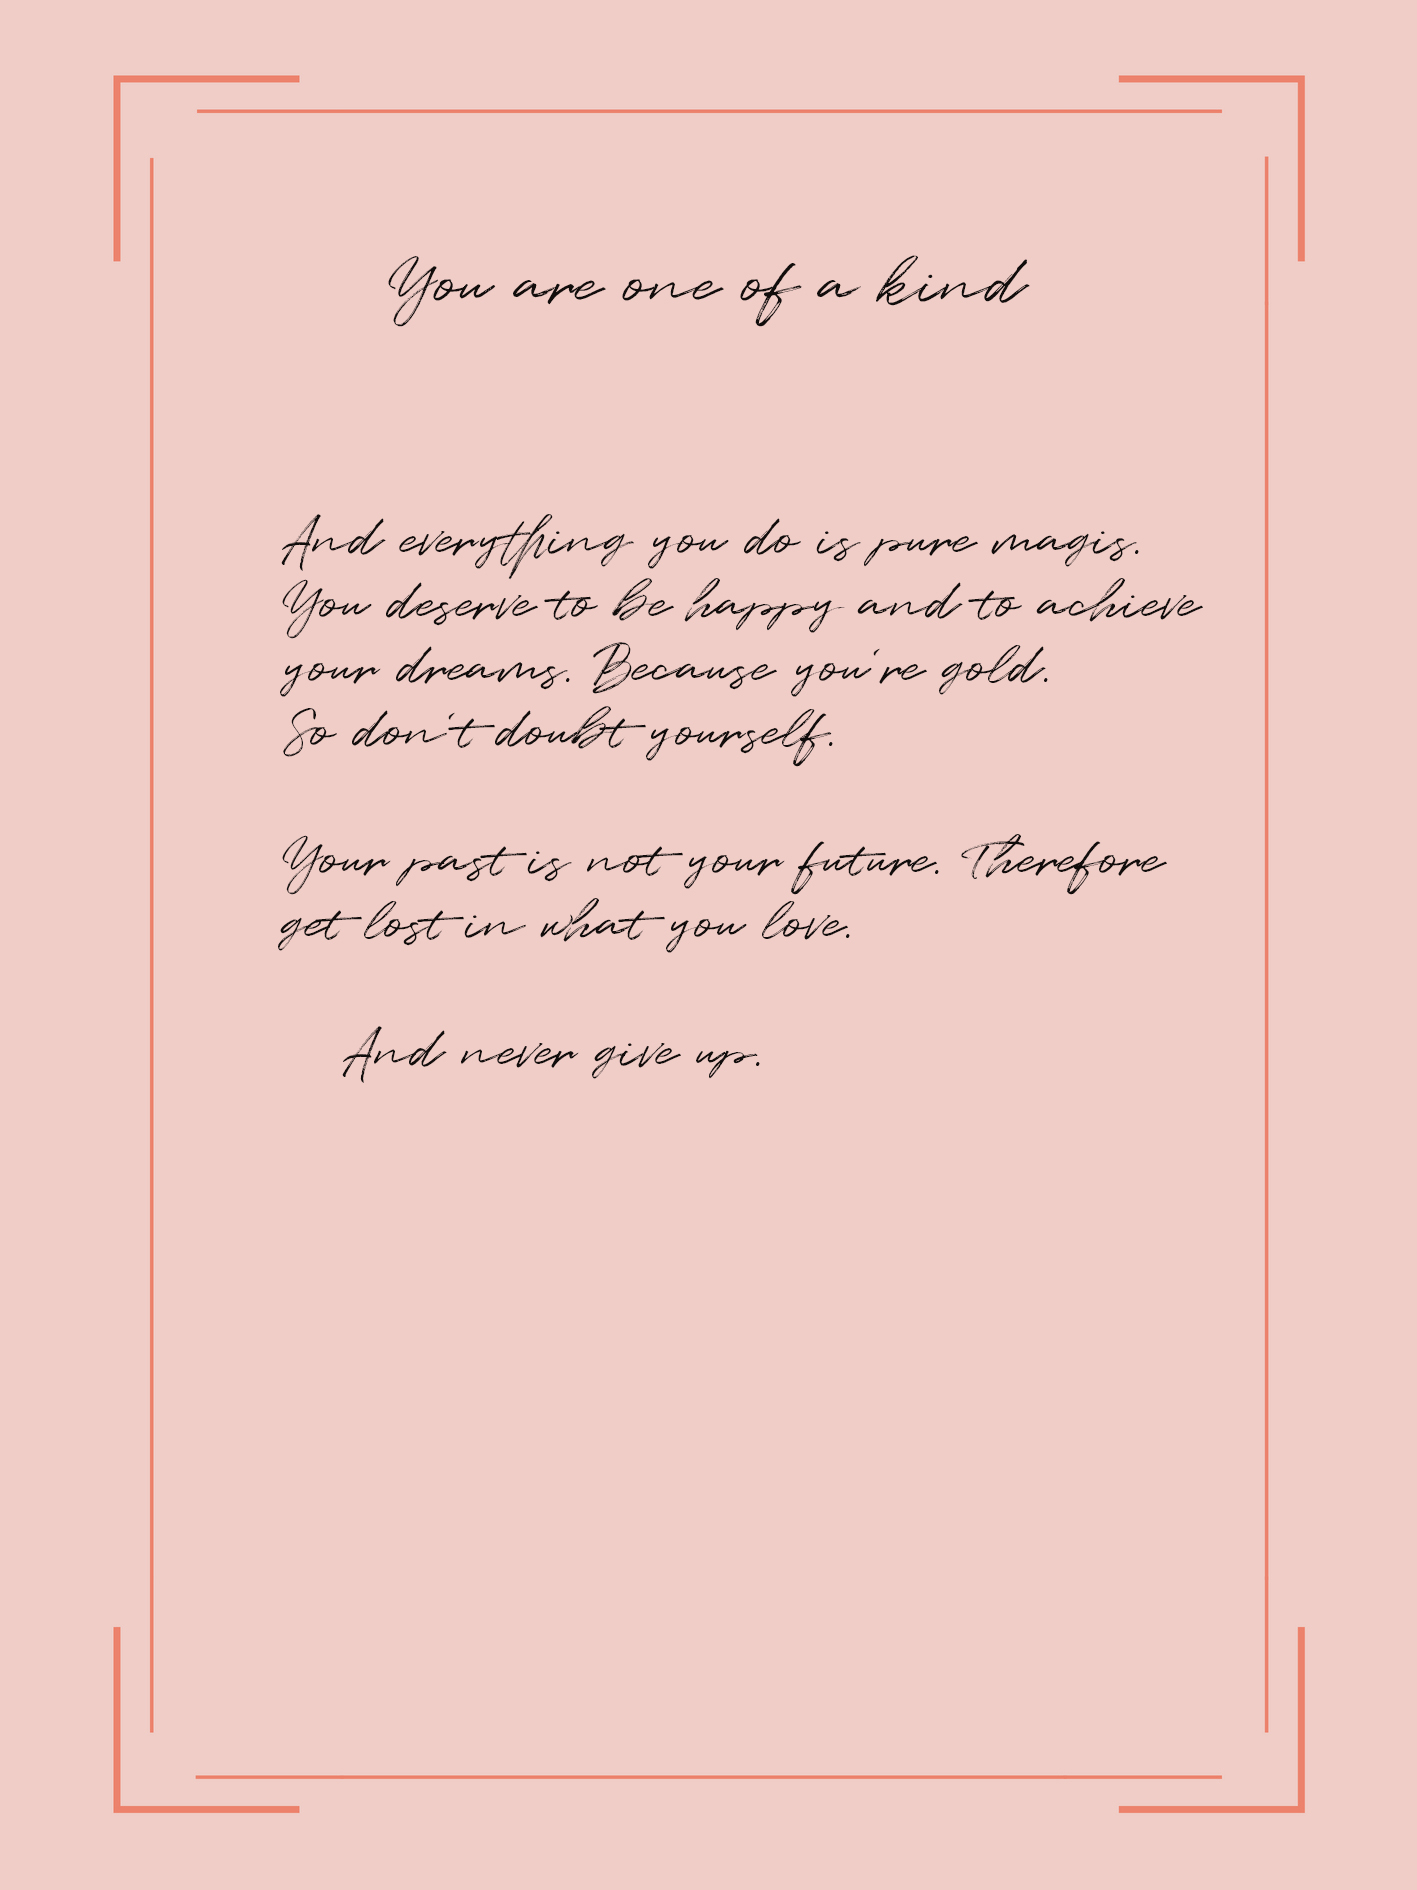 Self-love note – never give up